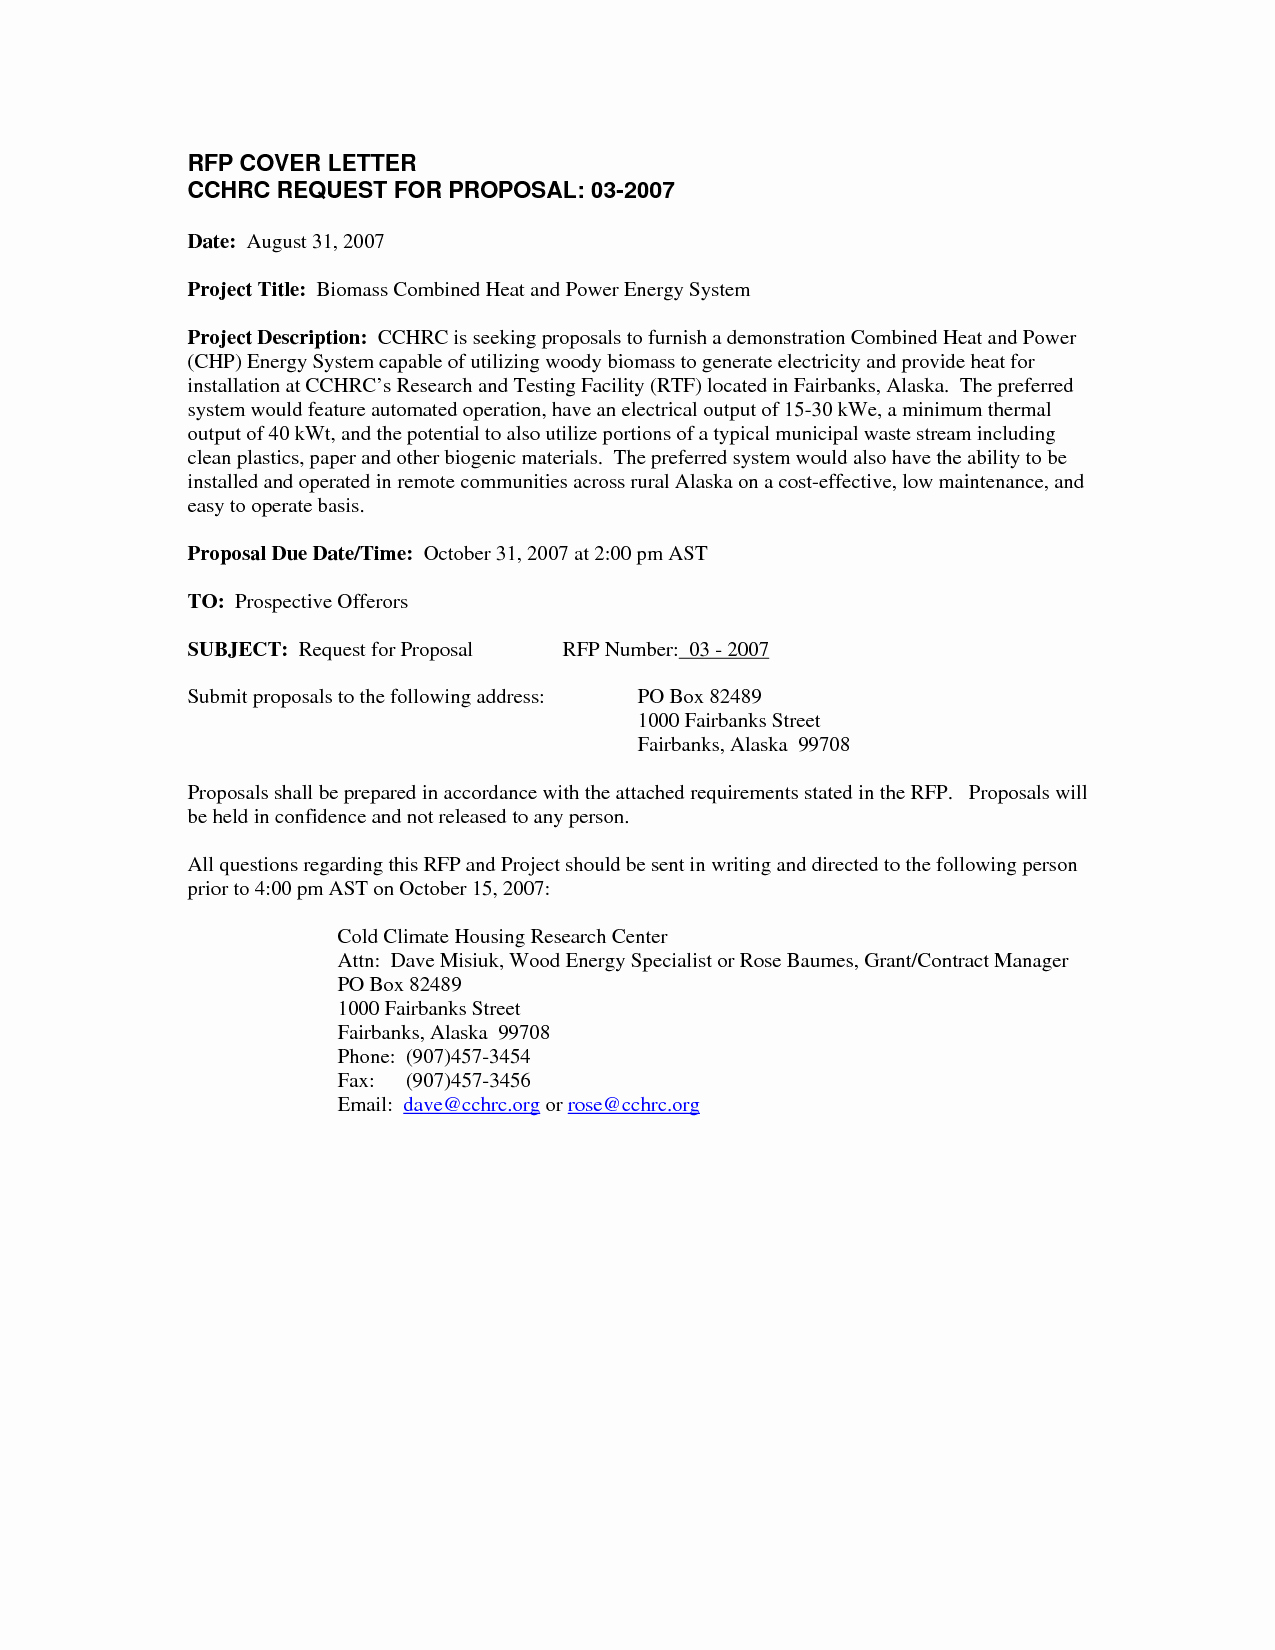 Proposal Cover Letter Template Fresh Cover Letter for Submission Of A Proposal